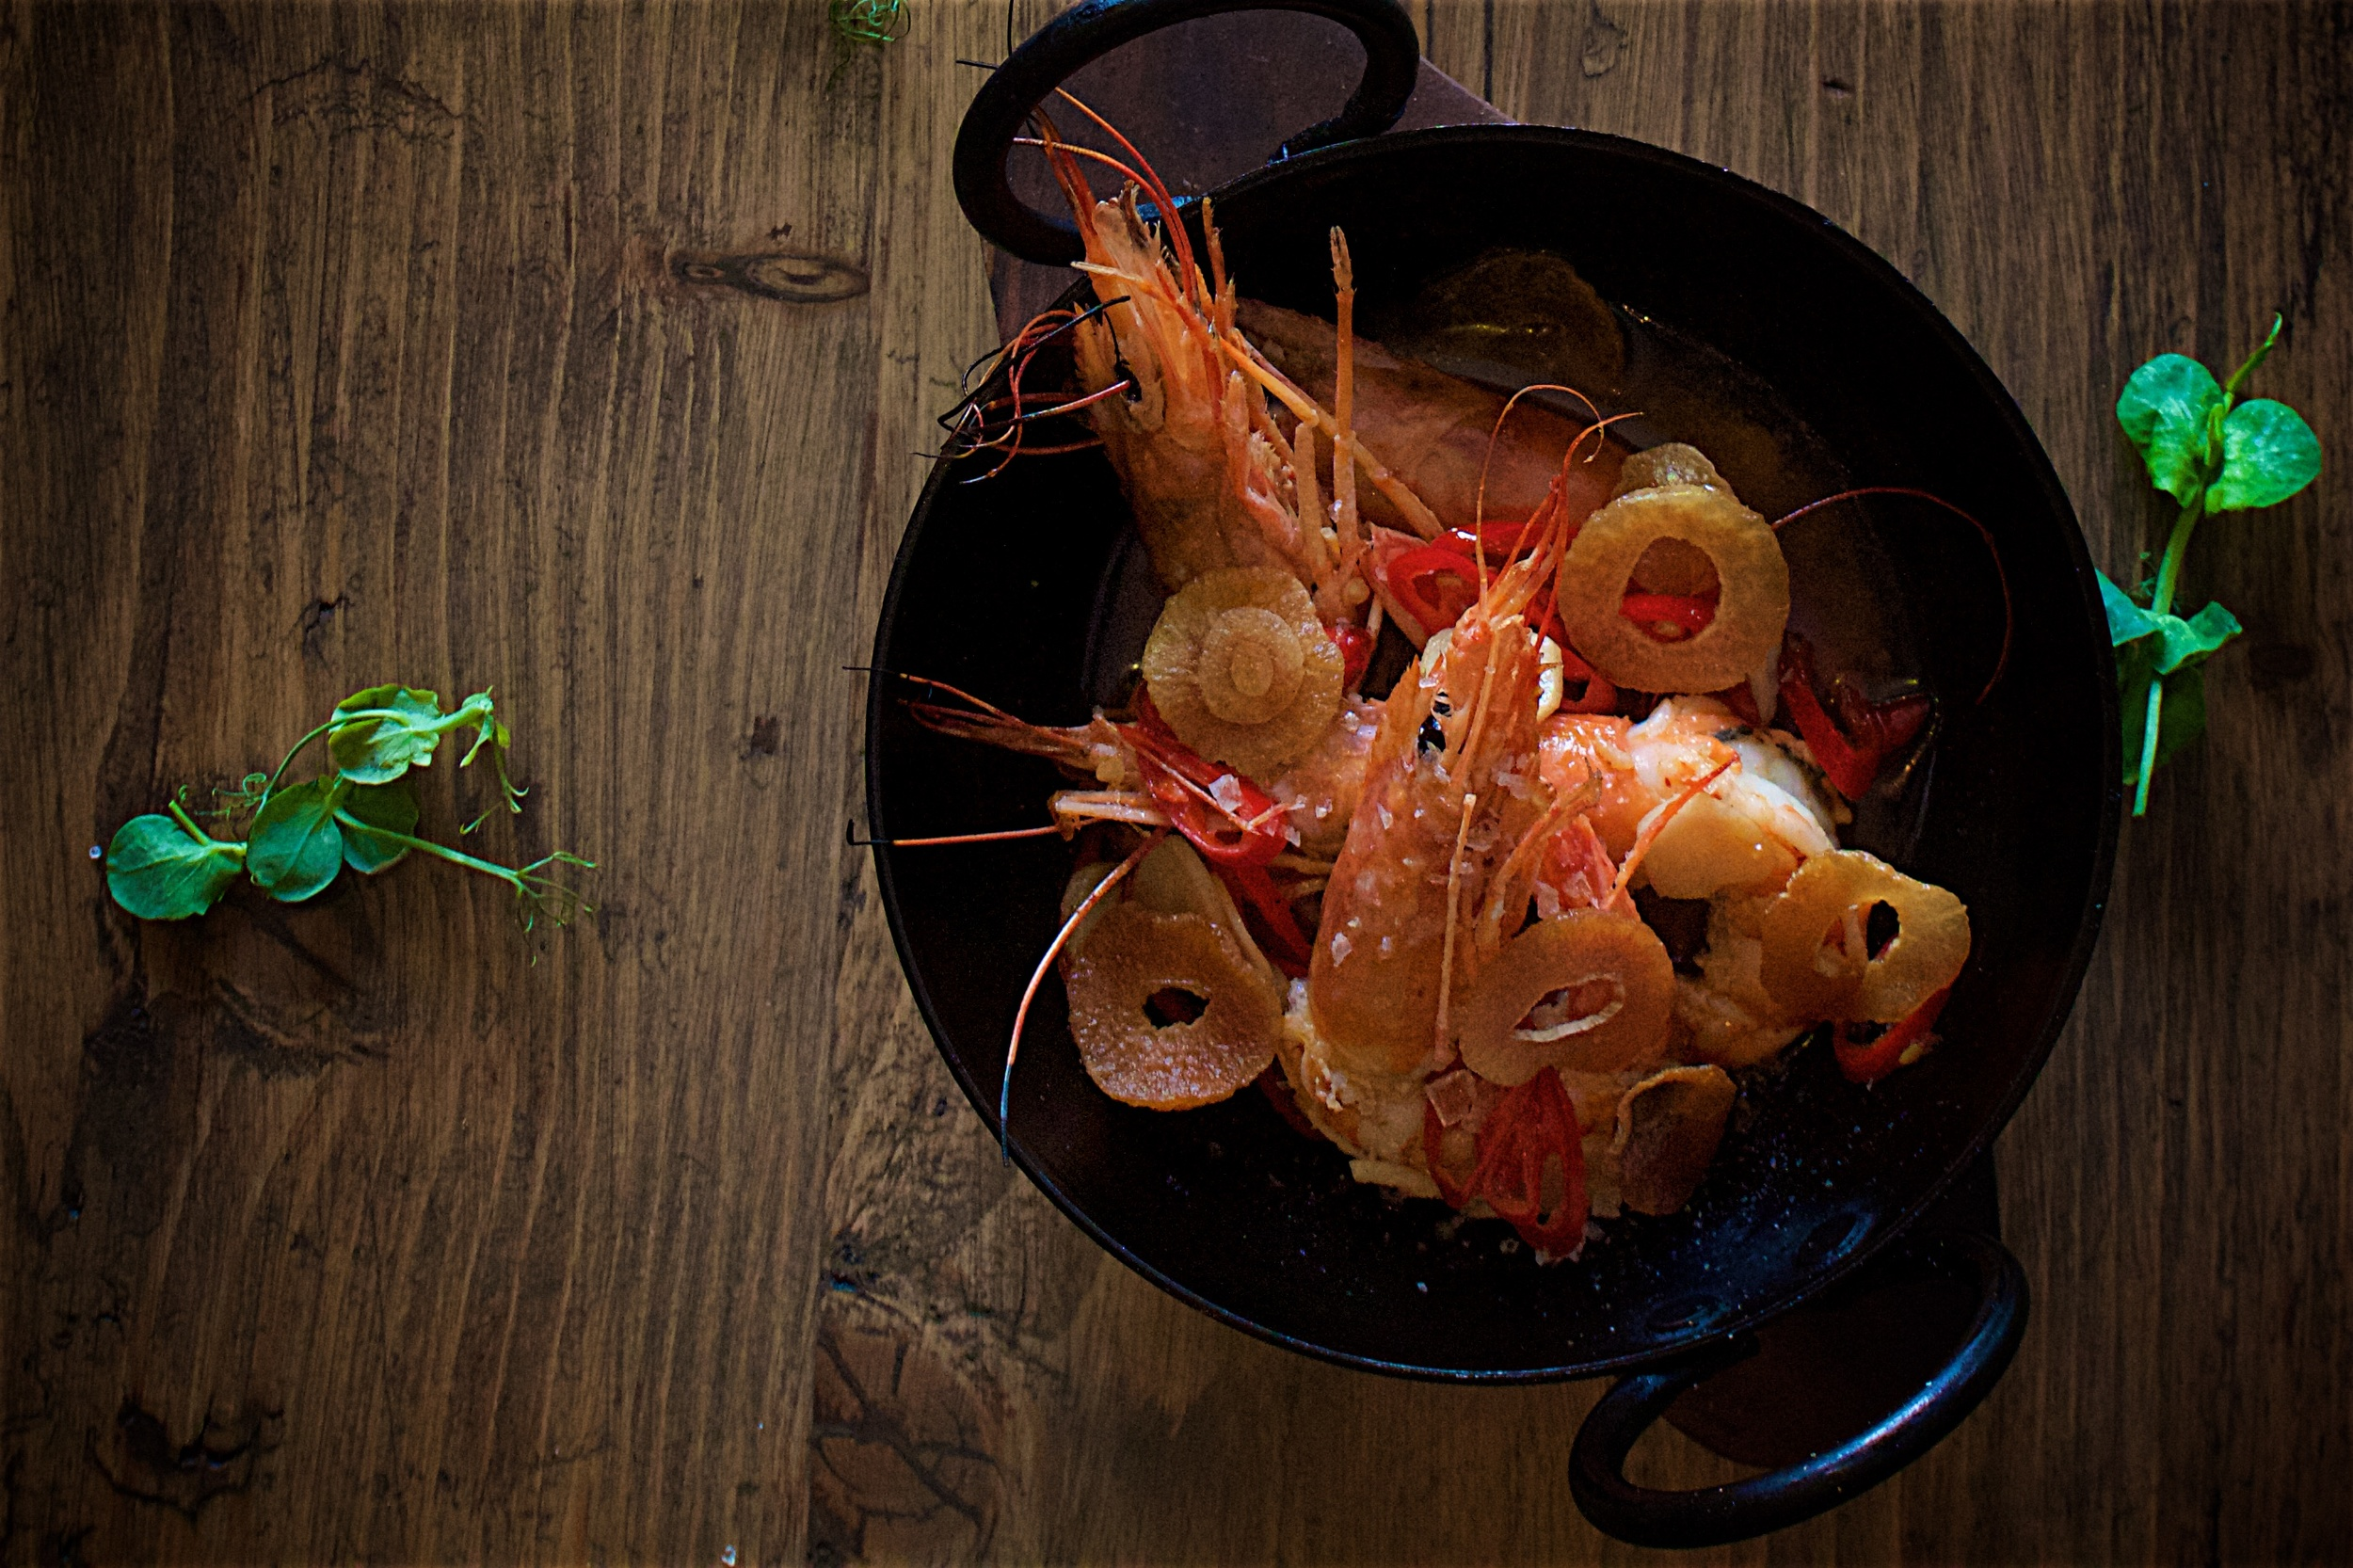 GAMBAS AL AJILLO - Pan cooked prawns with garlic and red chillies in olive oil.